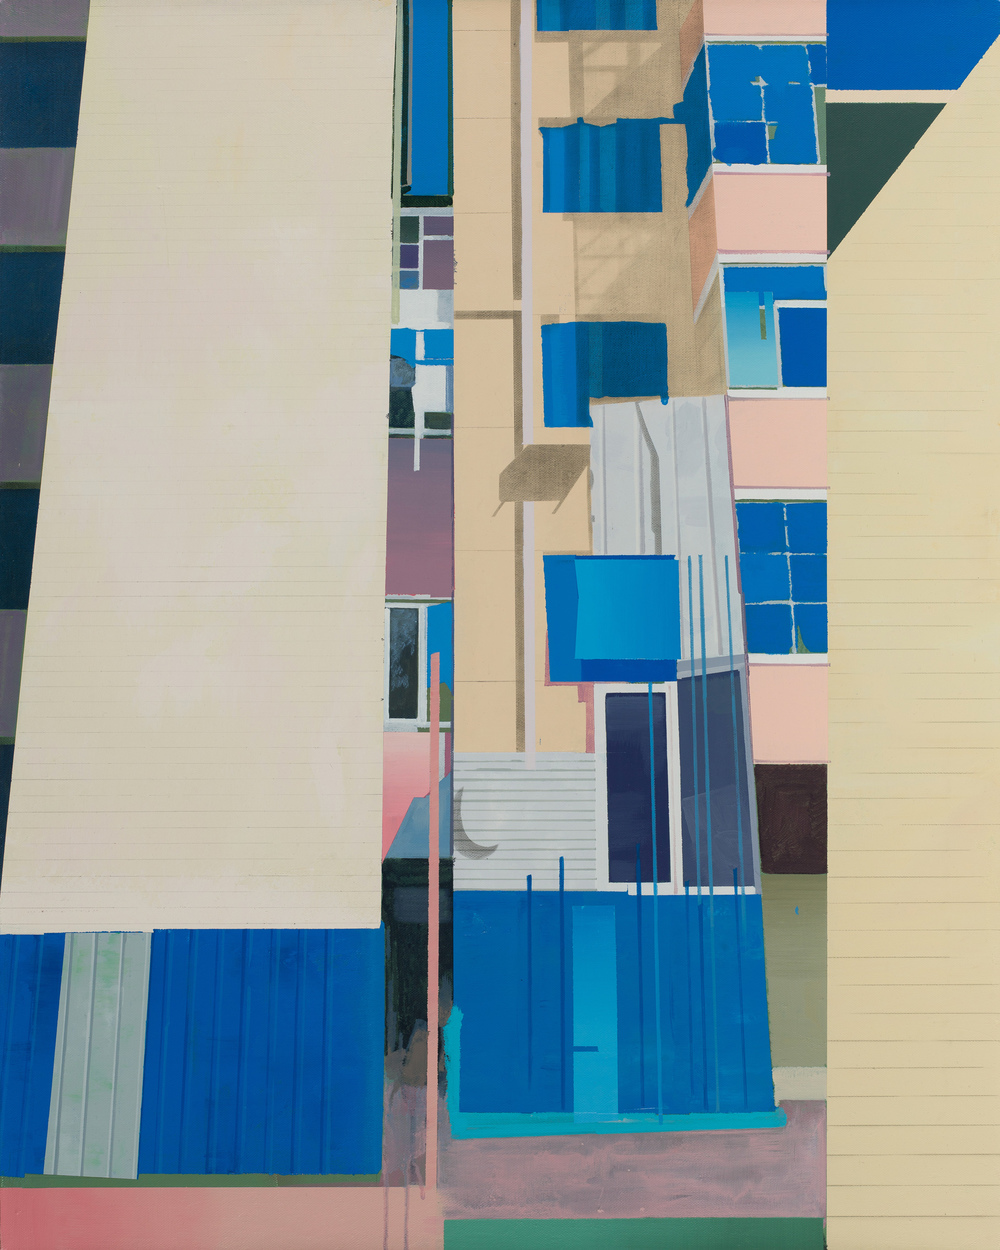 Hou Yong 侯勇, Blue Window 蓝窗, 2013, Acrylic on canvas 布面丙烯, 100 x 80 cm